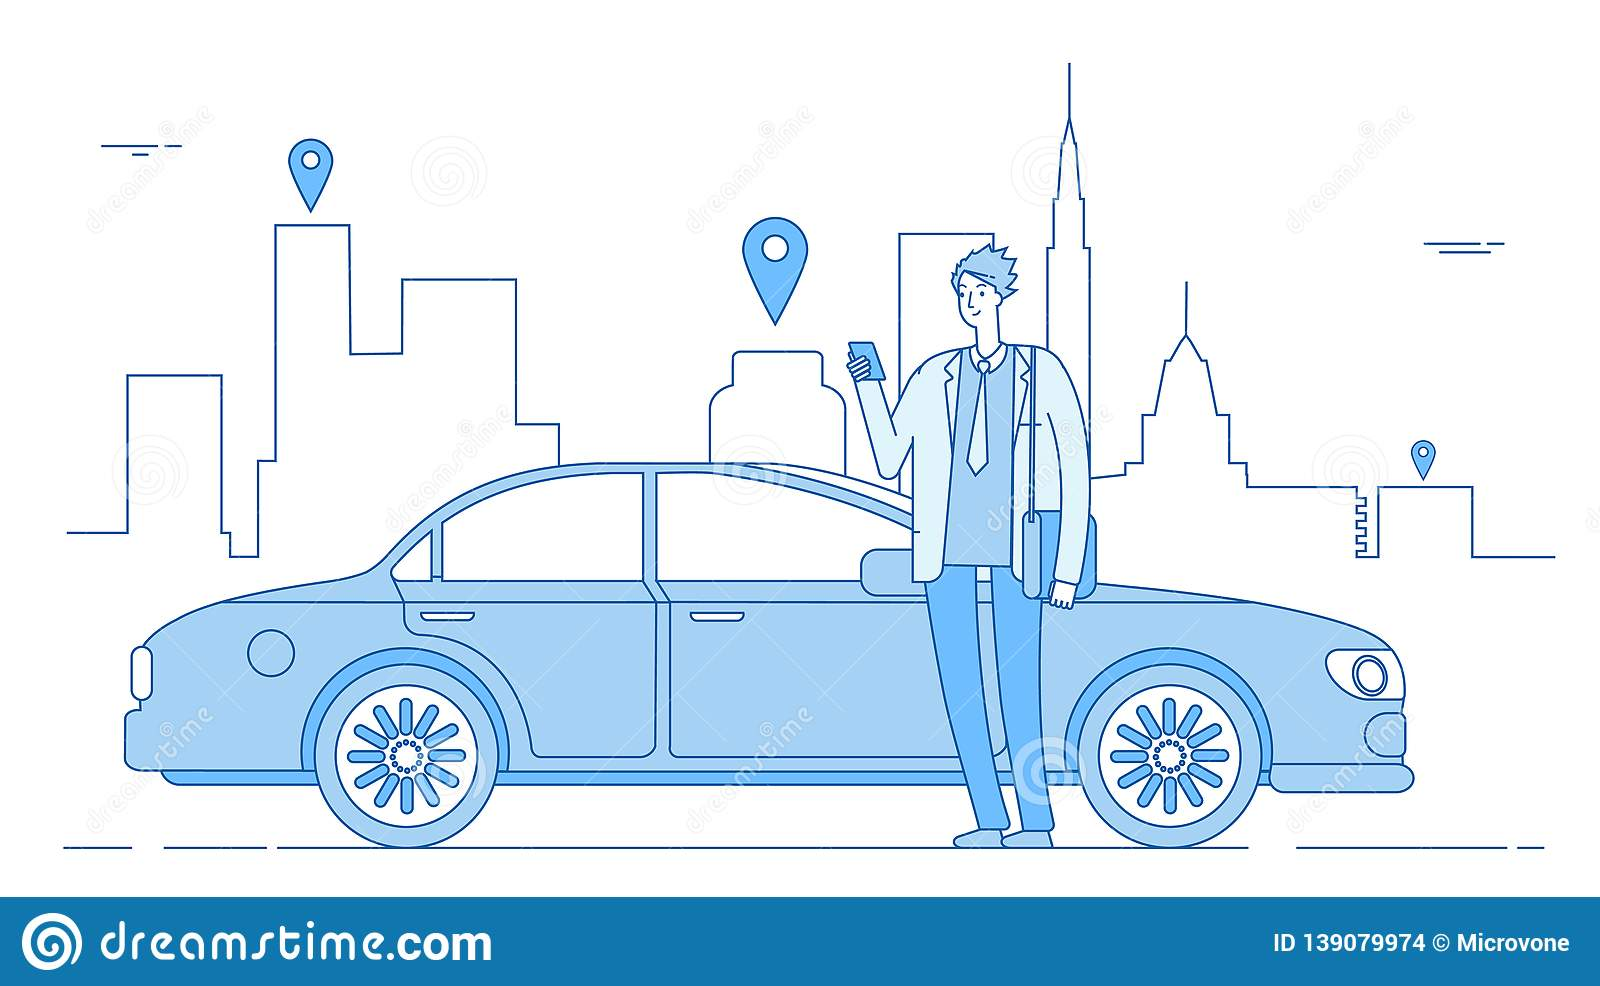 Car sharing concept. Car rental application businessman with smartphone at car on city street. Parking service line